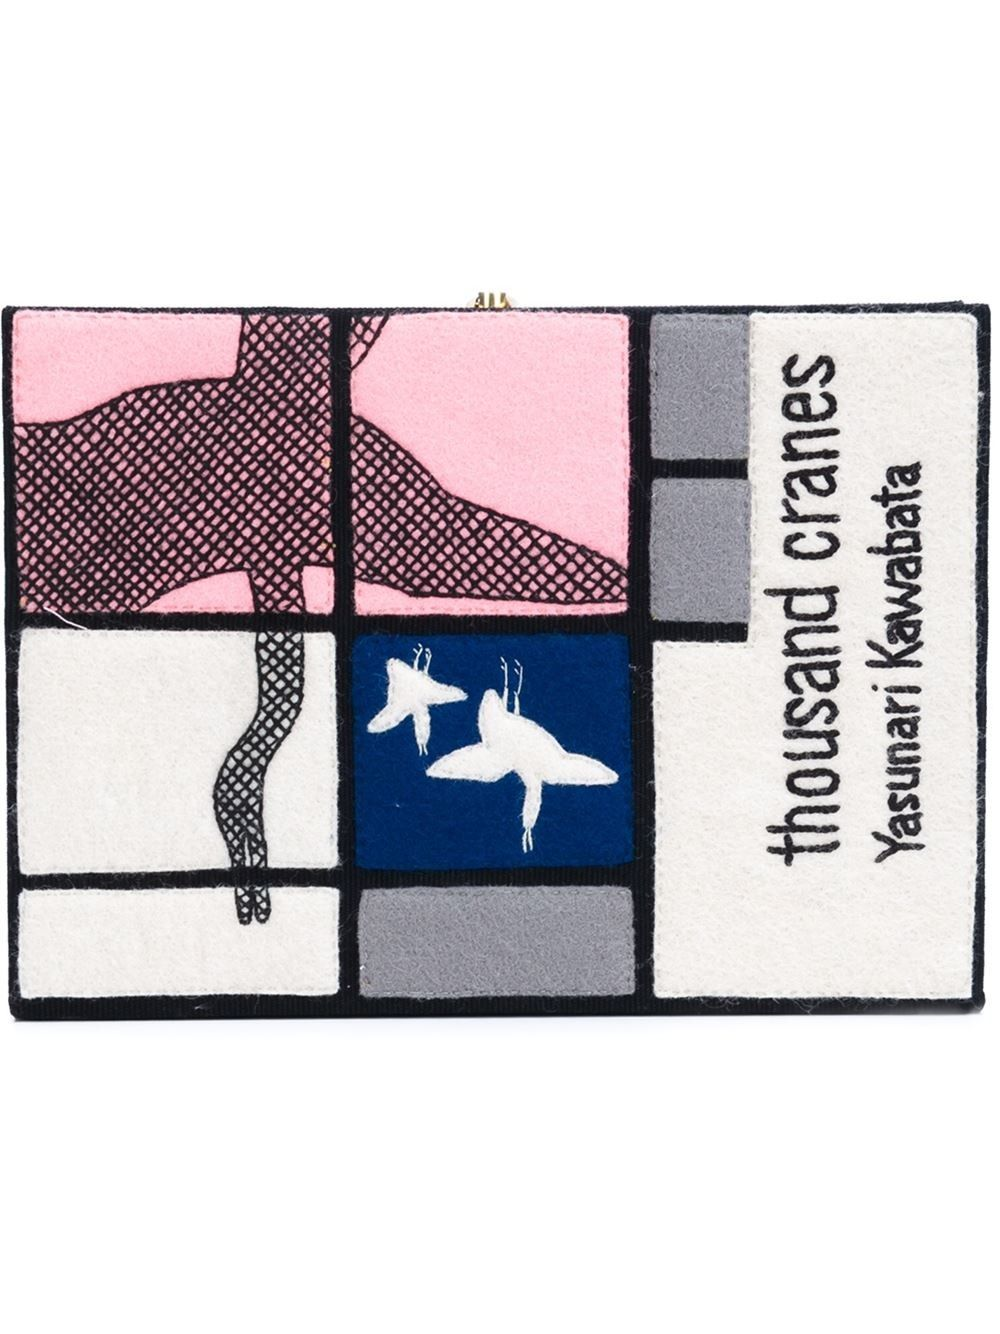 OLYMPIA LE-TAN Seagulls Print Clutch. #olympiale-tan #bags #clutch #hand bags #